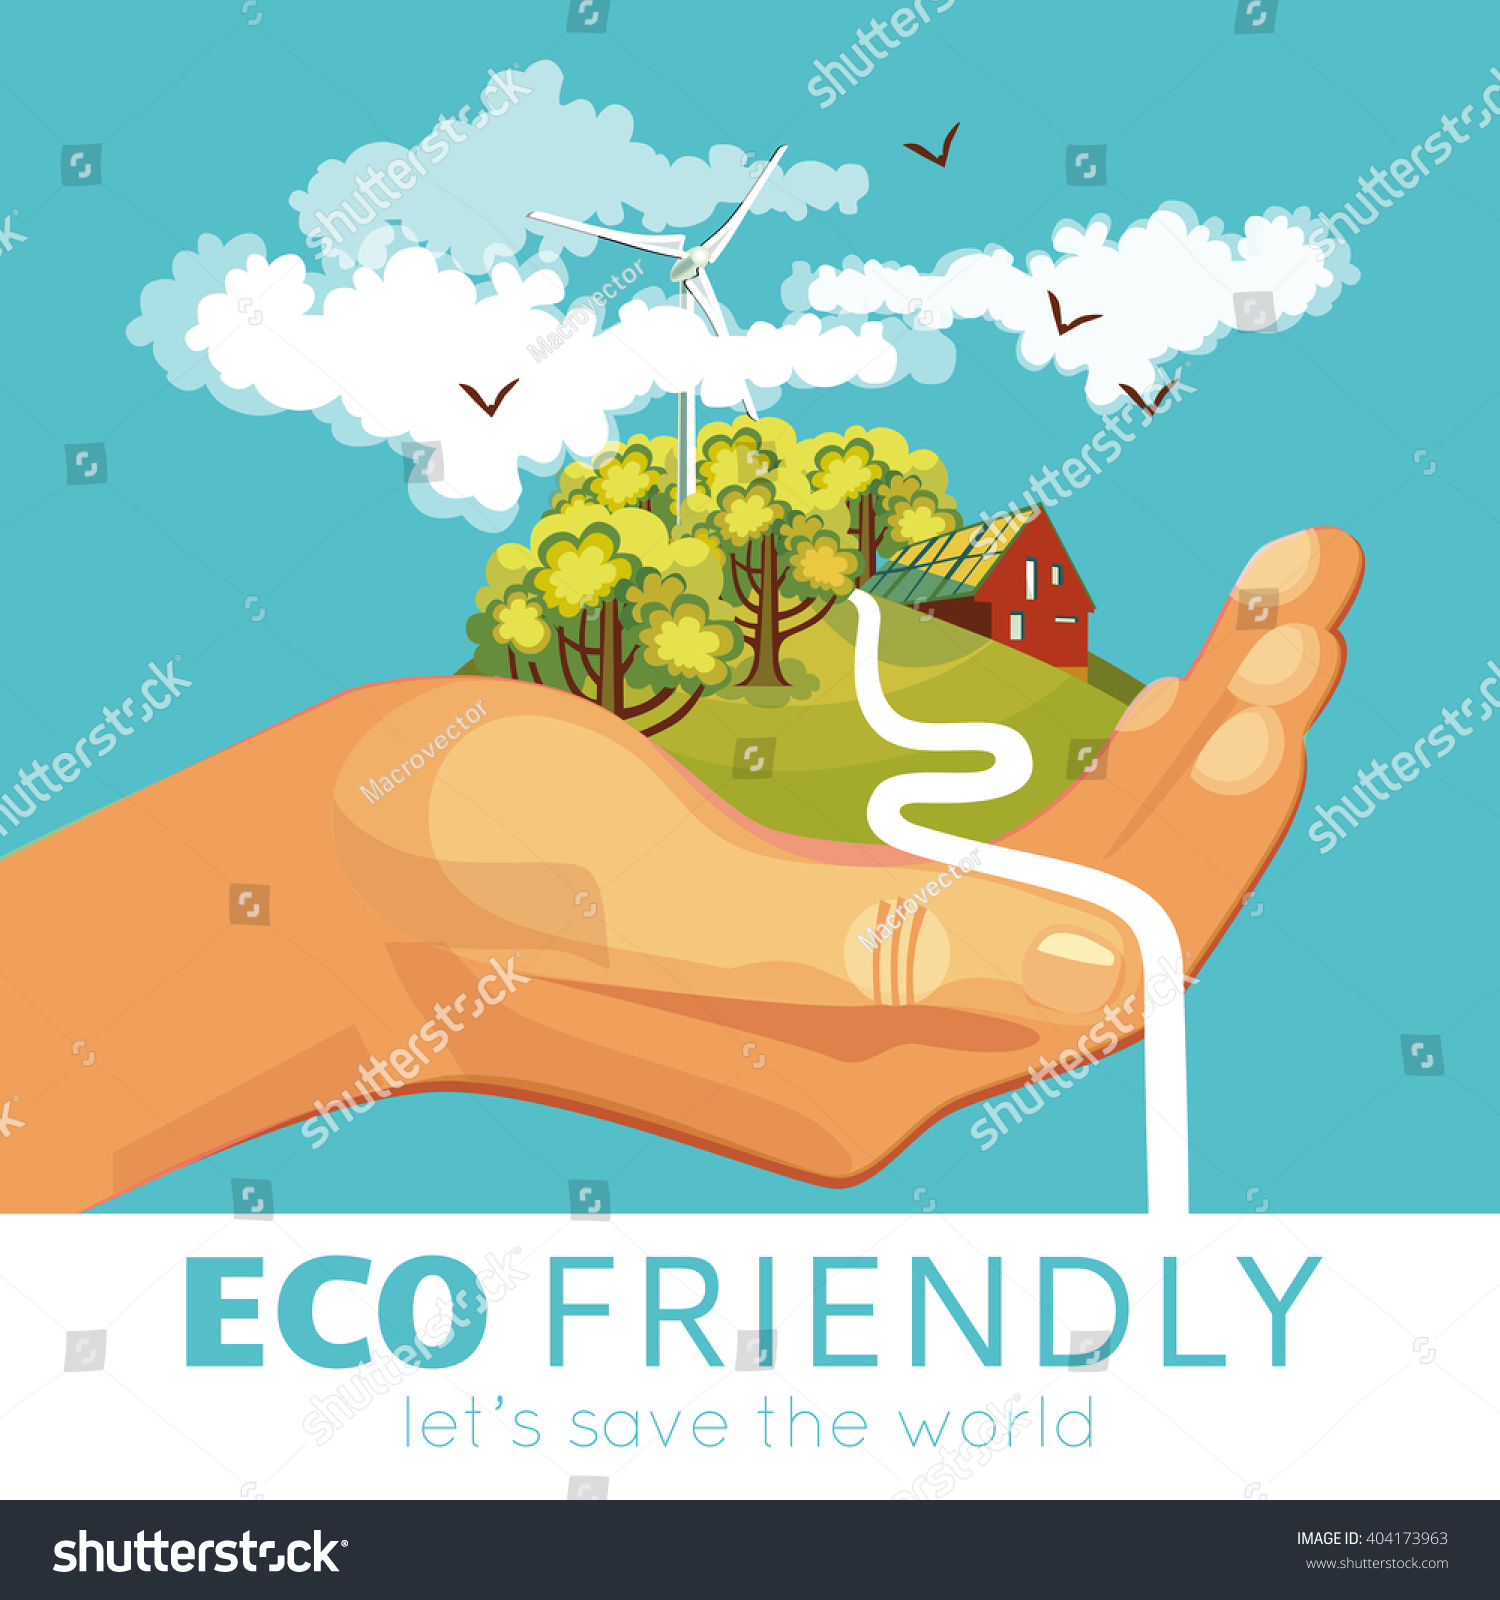 Poster design on environment - Saving Of Environment Poster With Countryside And Ecosystems At Palm On Blue Background Vector Illustration